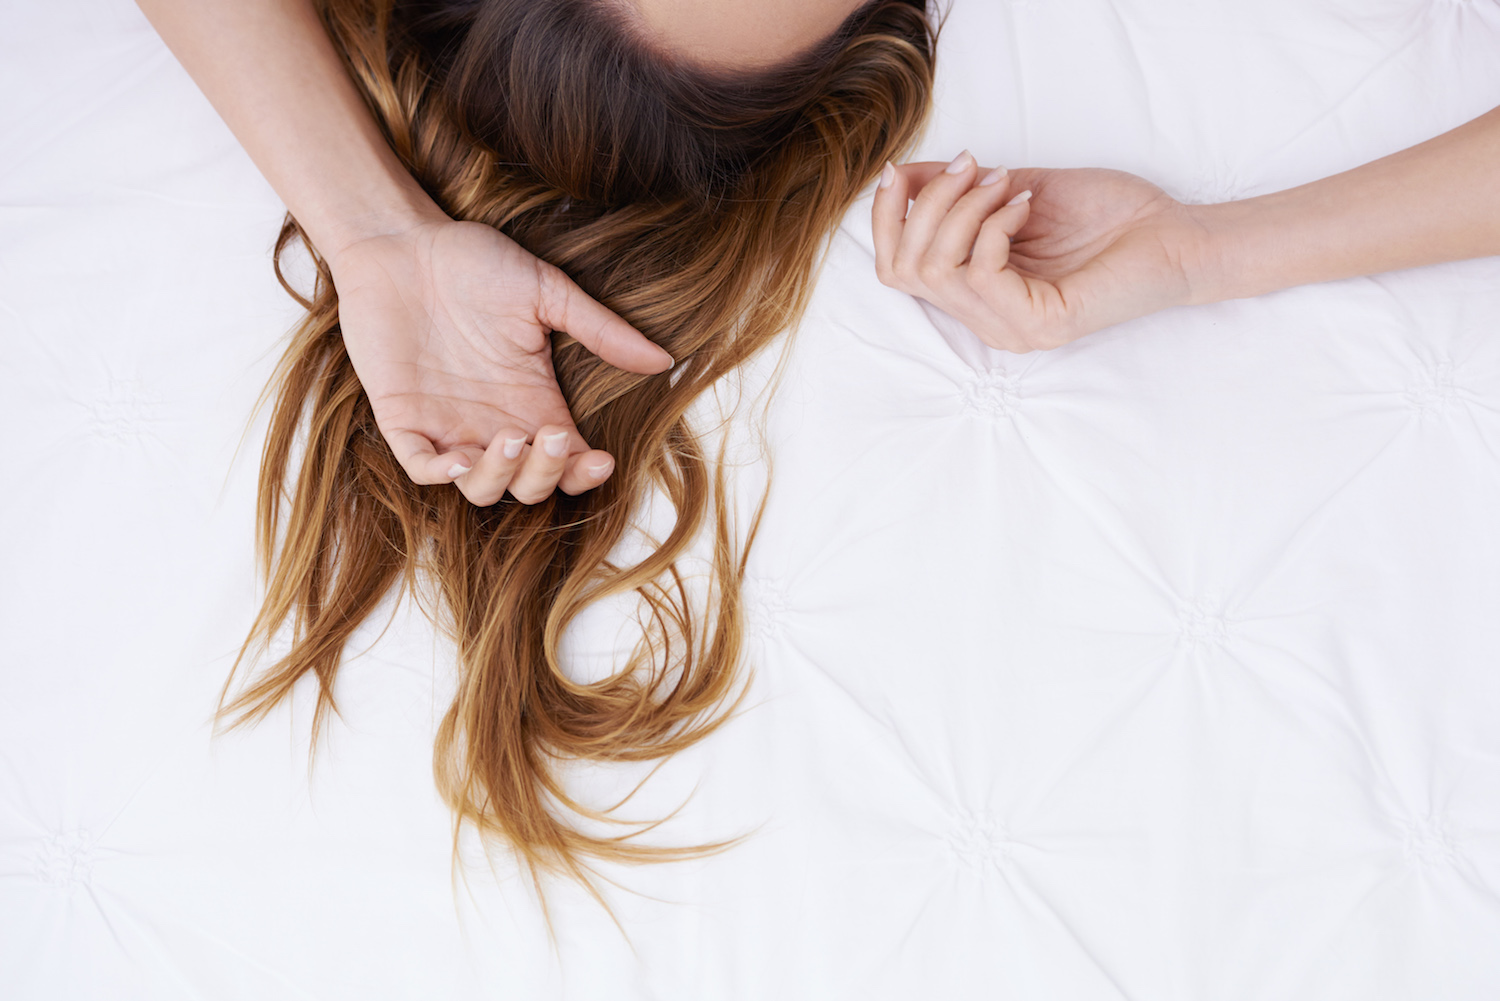 Woman's Hair with Dry Shampoo in It